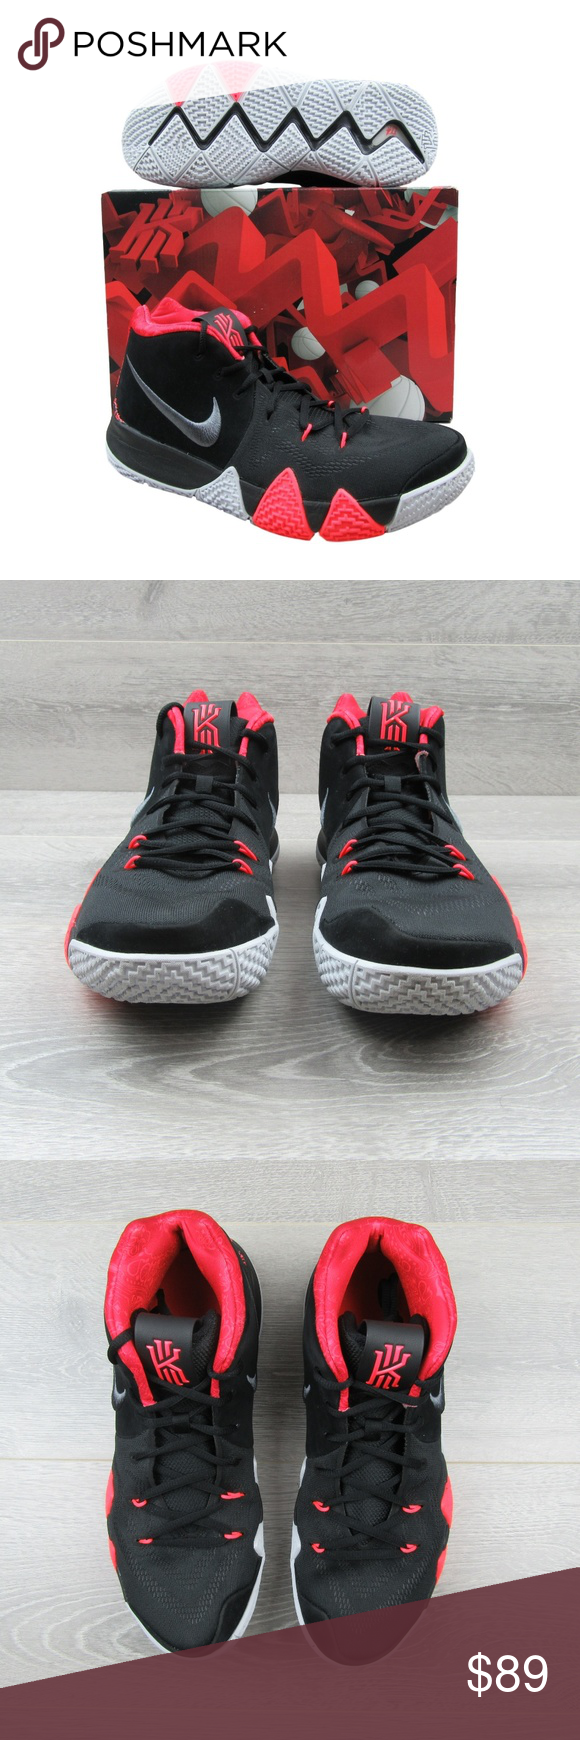 e07b41349176a Nike Kyrie 4 Black Crimson Basketball Shoes 11.5 PRICE IS FIRM - NO OFFERS  - Nike